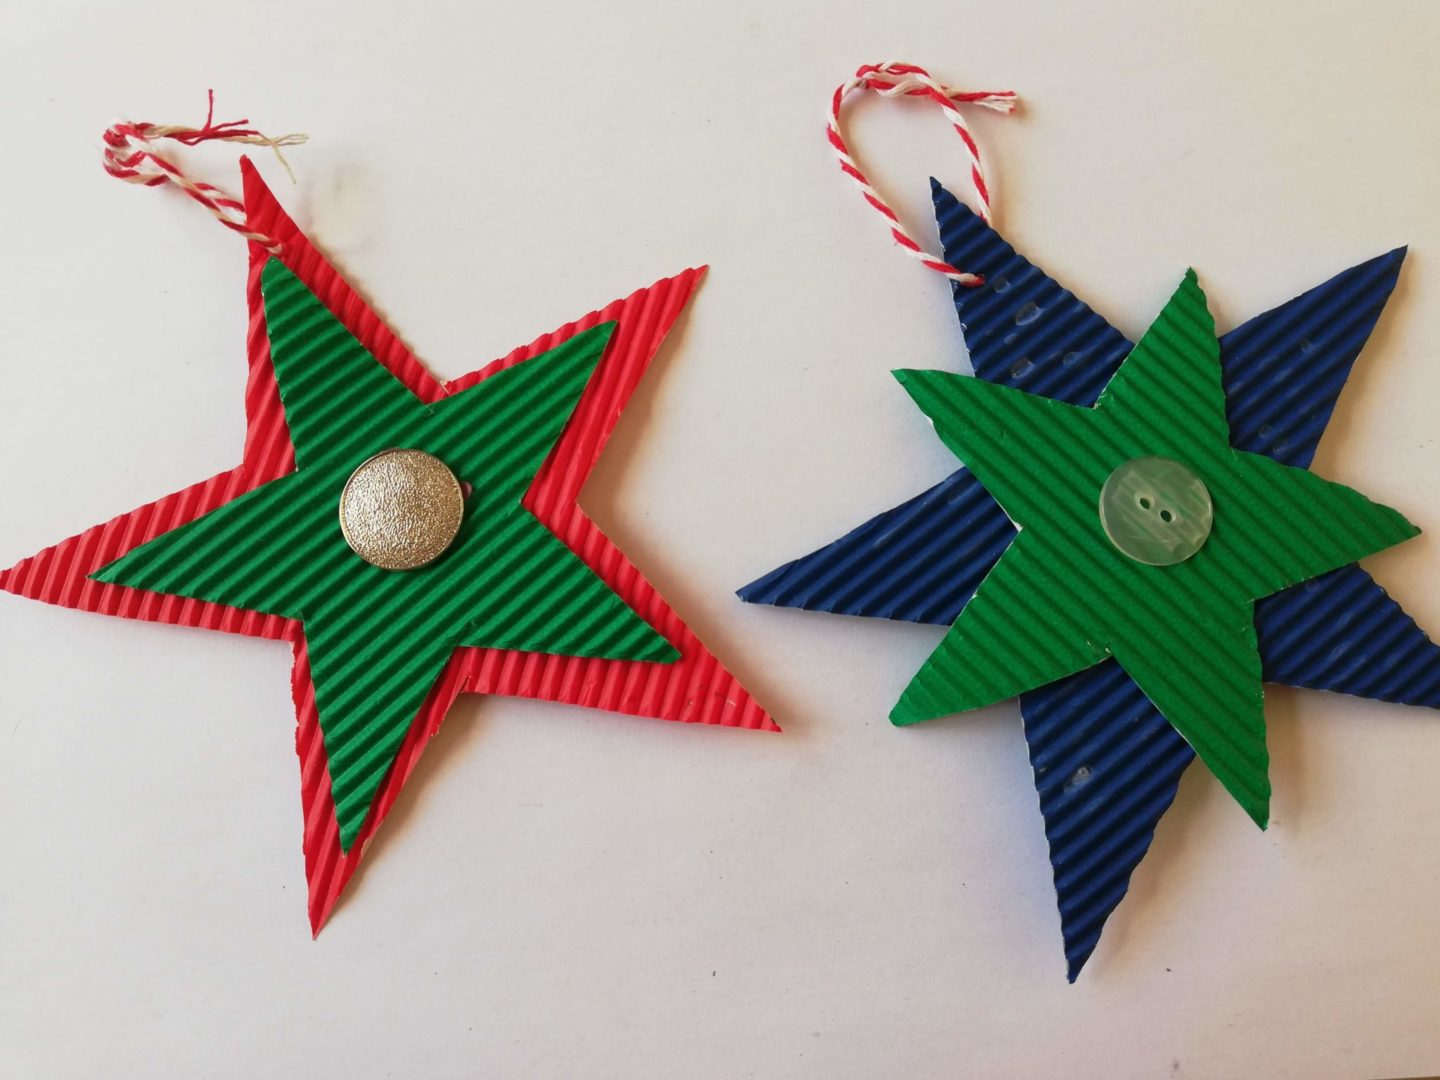 DIY Paper Christmas Stars - perfect for kids | HarassedMom